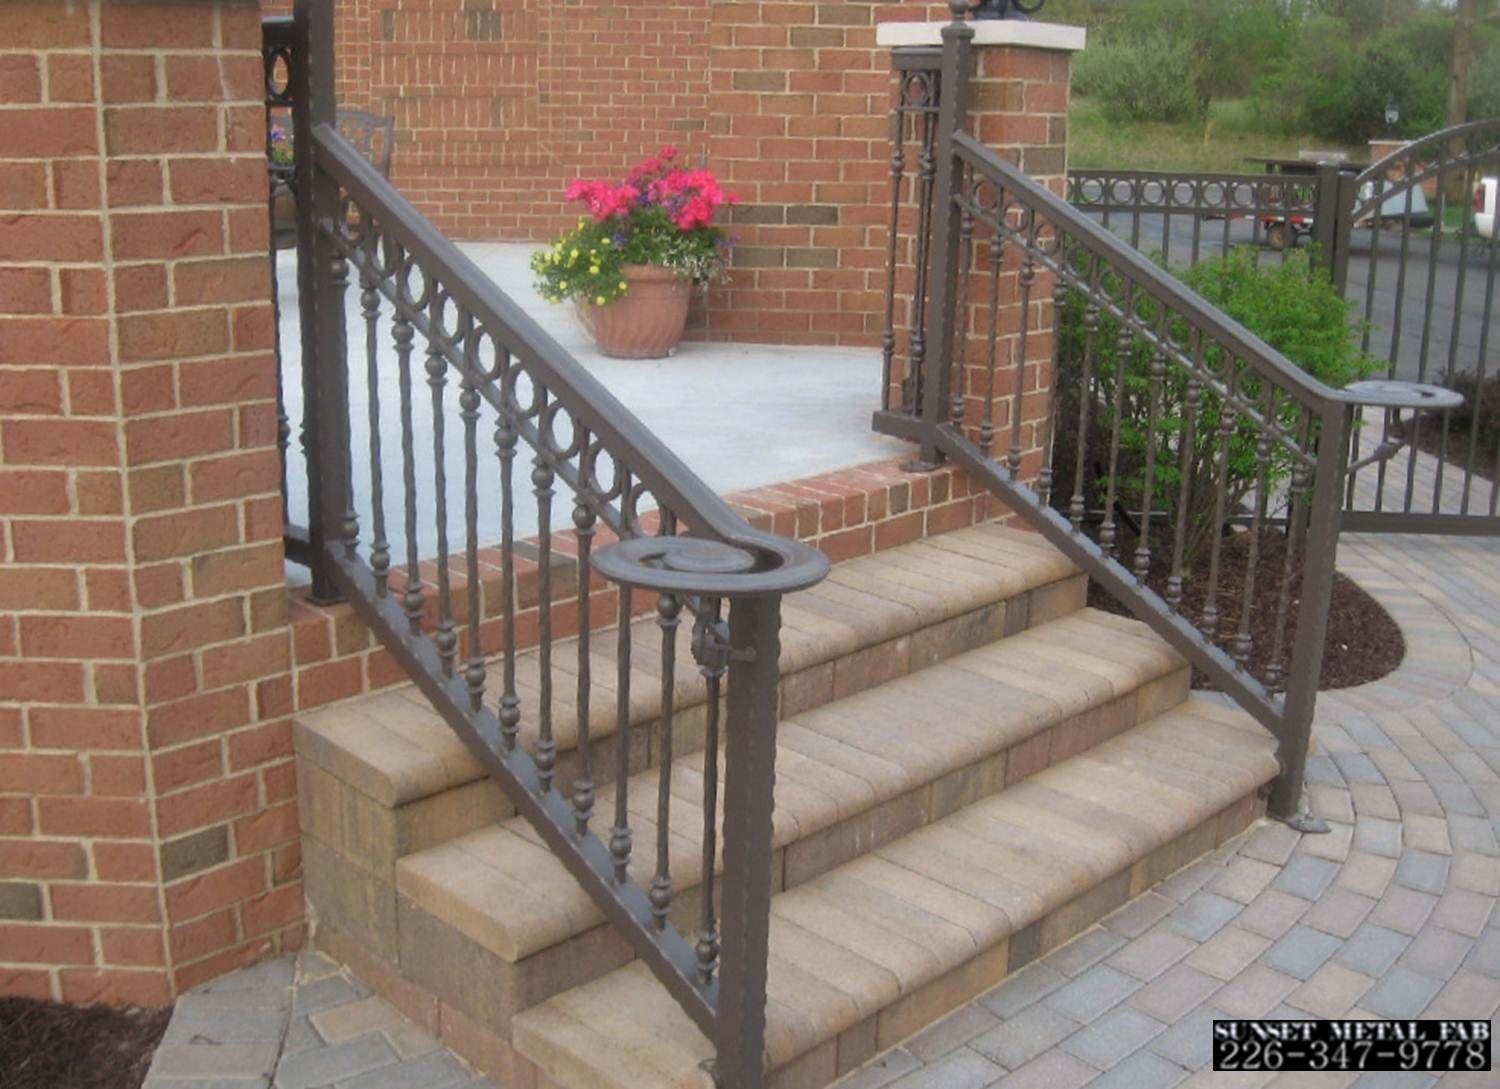 Outdoor Stair Railings Railings Stair Check More At Http Staircasedesign Xyz Outdoor St Railings Outdoor Outdoor Stair Railing Wrought Iron Porch Railings